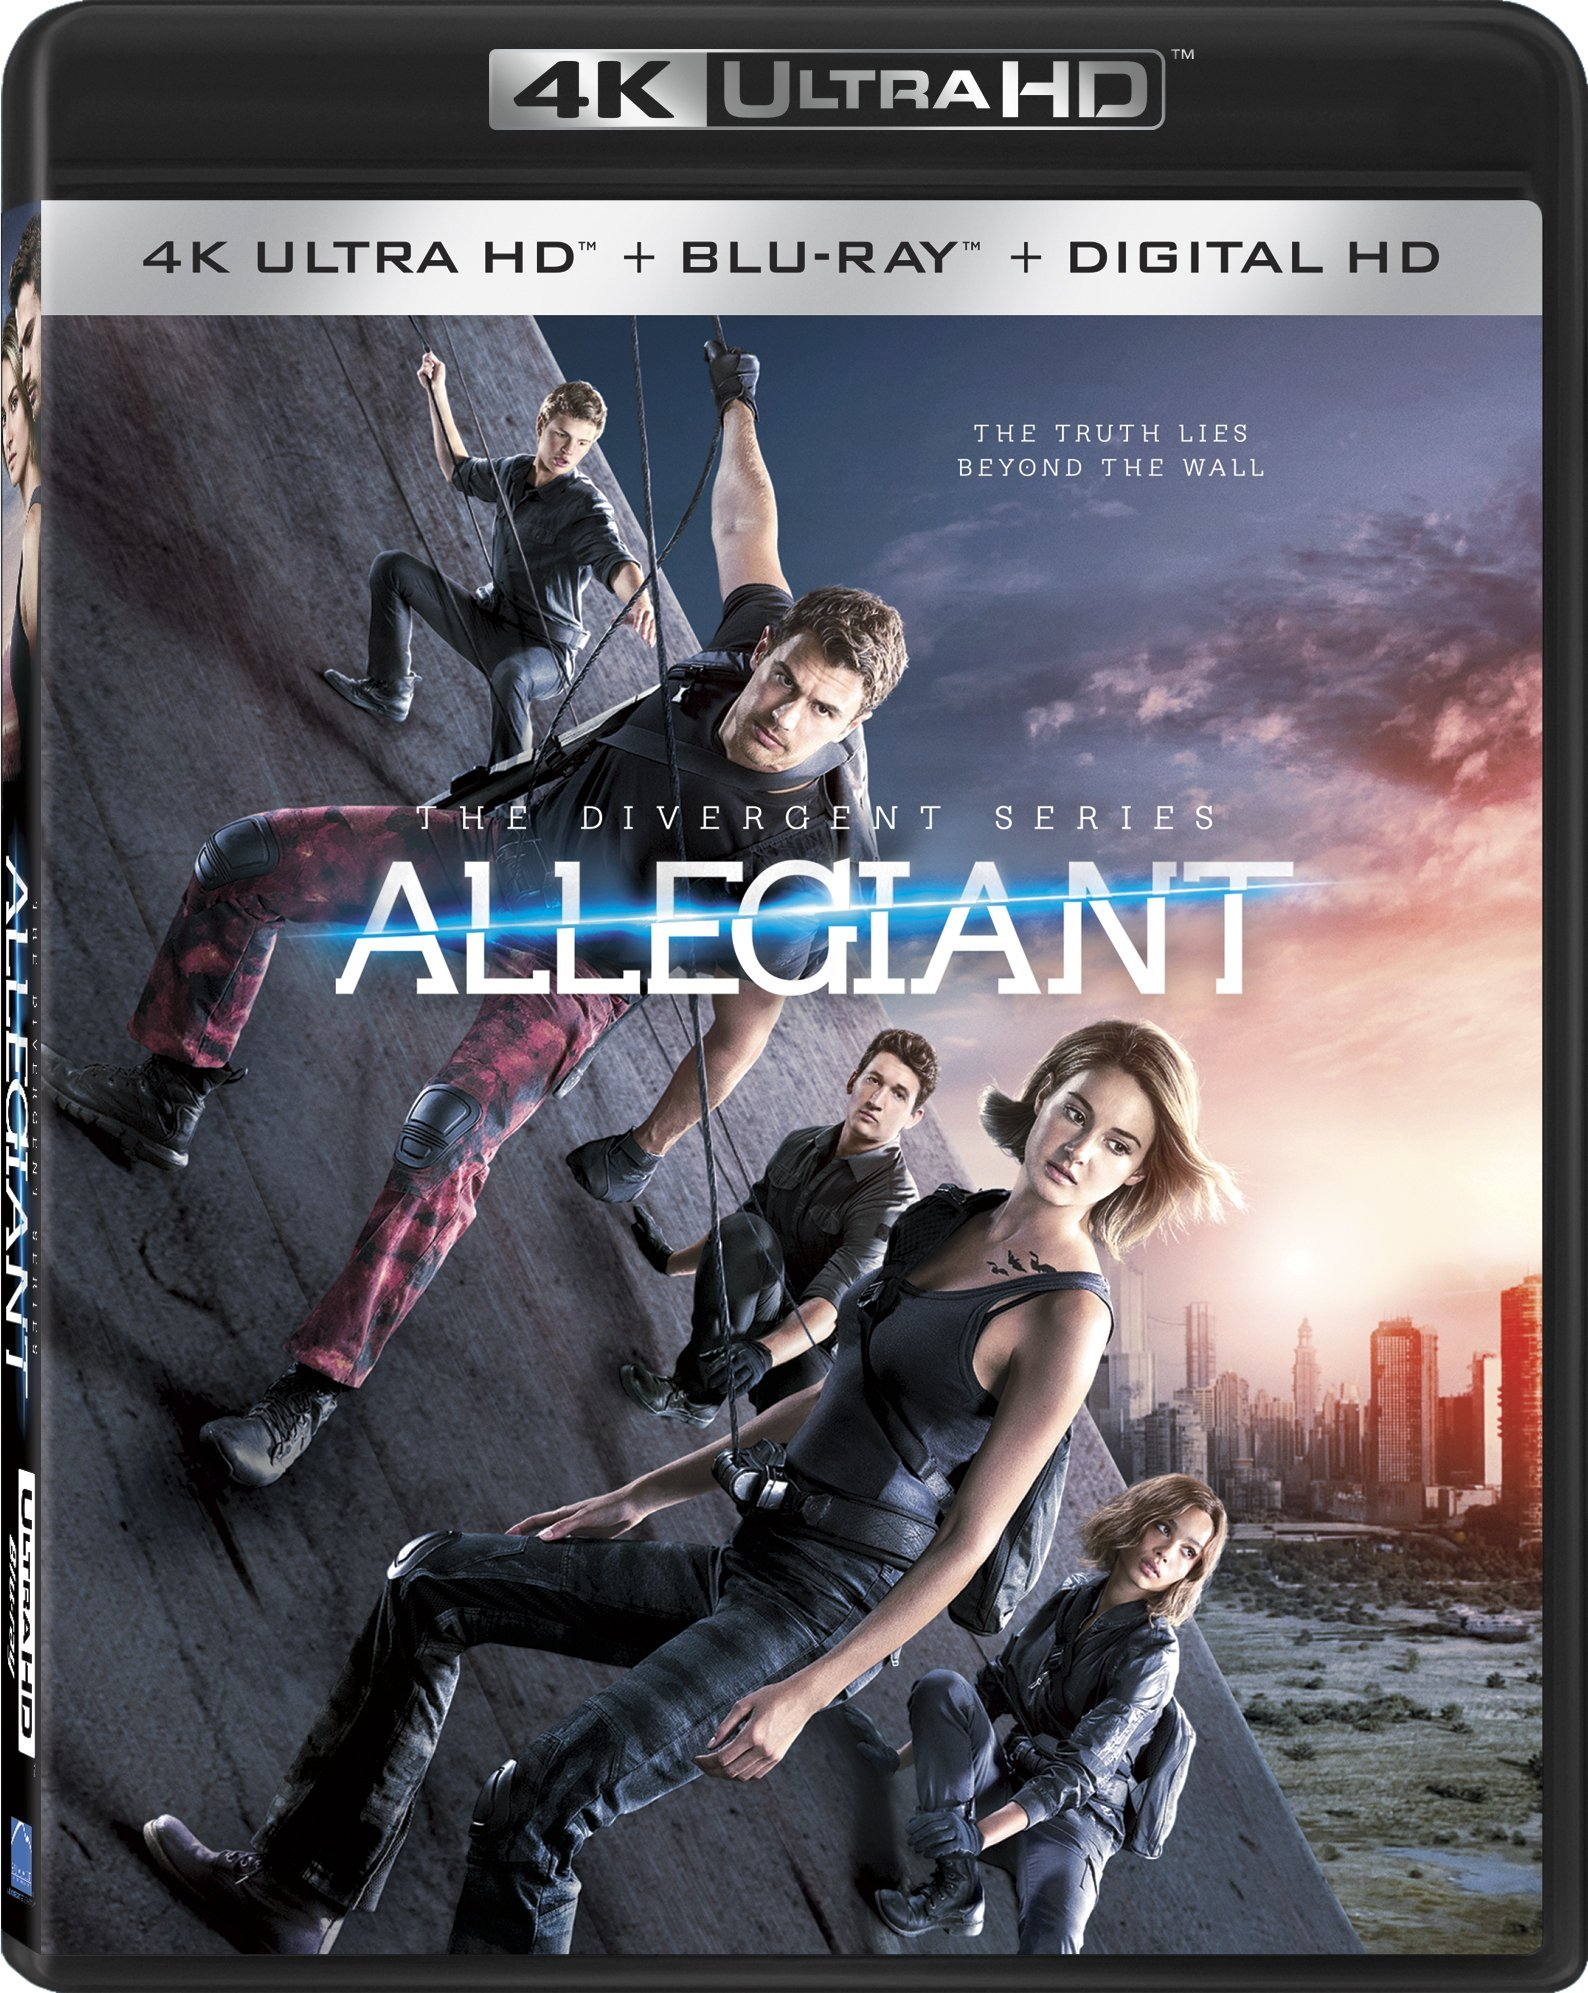 4K Blu-ray : The Divergent Series: Allegiant (AC-3, Digital Theater System, Widescreen, , Digitally Mastered in HD)